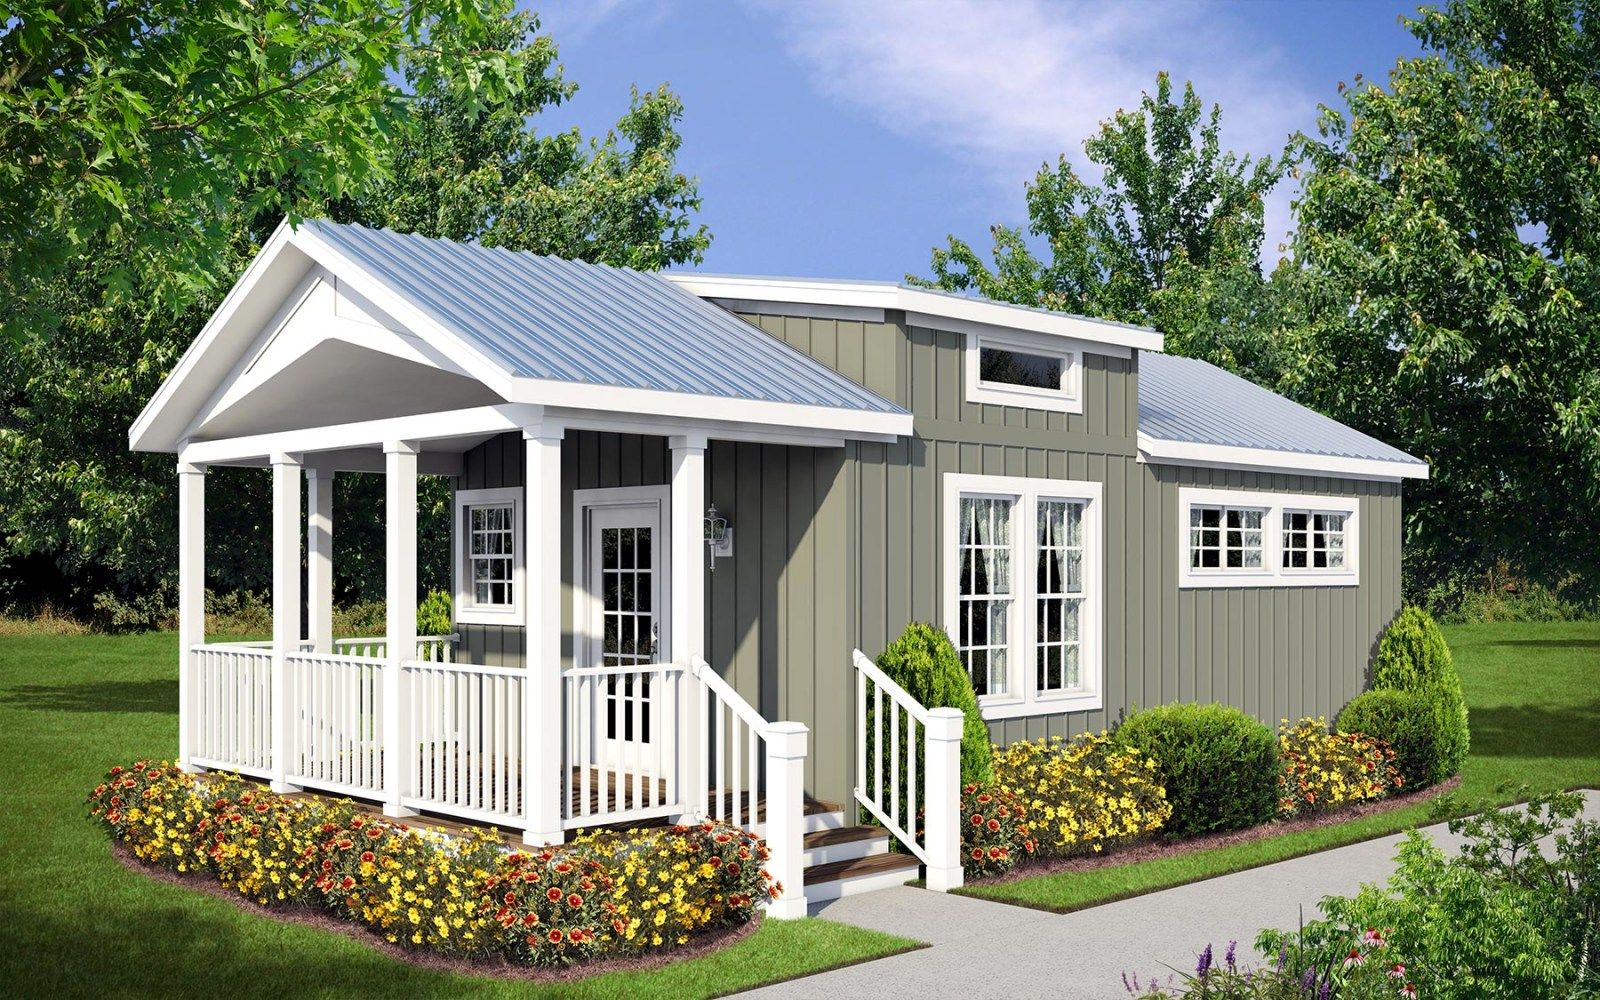 The Antigua Built By Athens Park Model Rvs In Athens Tx View The Floor Plan Of This 1 Bedroom 1 Mobile Home Floor Plans Park Model Homes Small Modular Homes